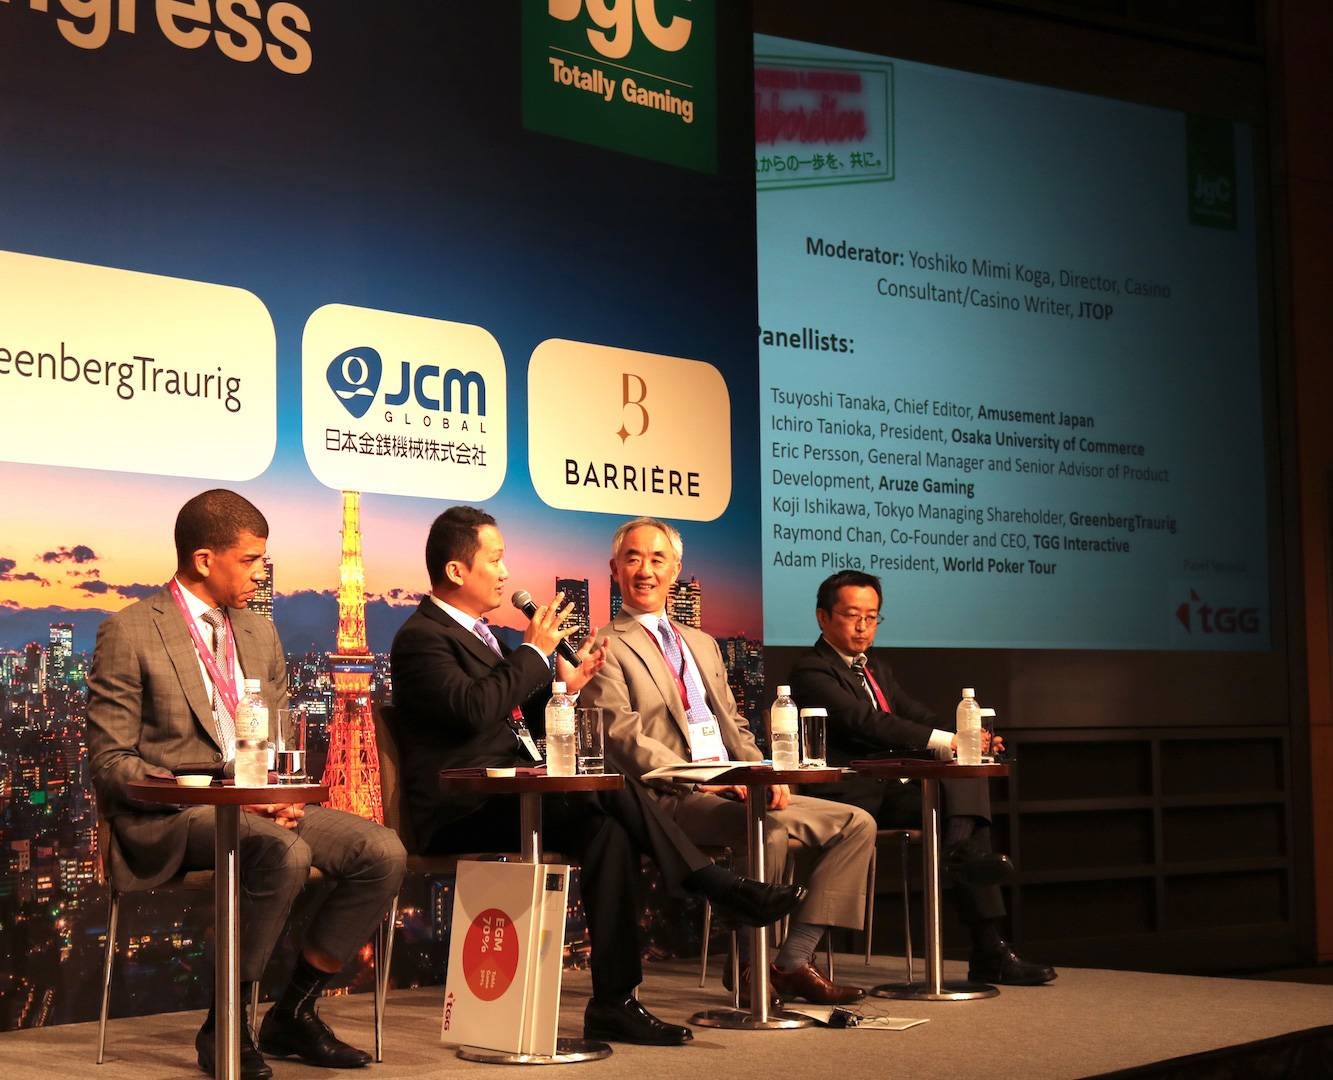 Hong Kong's TGG joining 420 Global CEOs and Executives in Japan Gaming Congress 2017